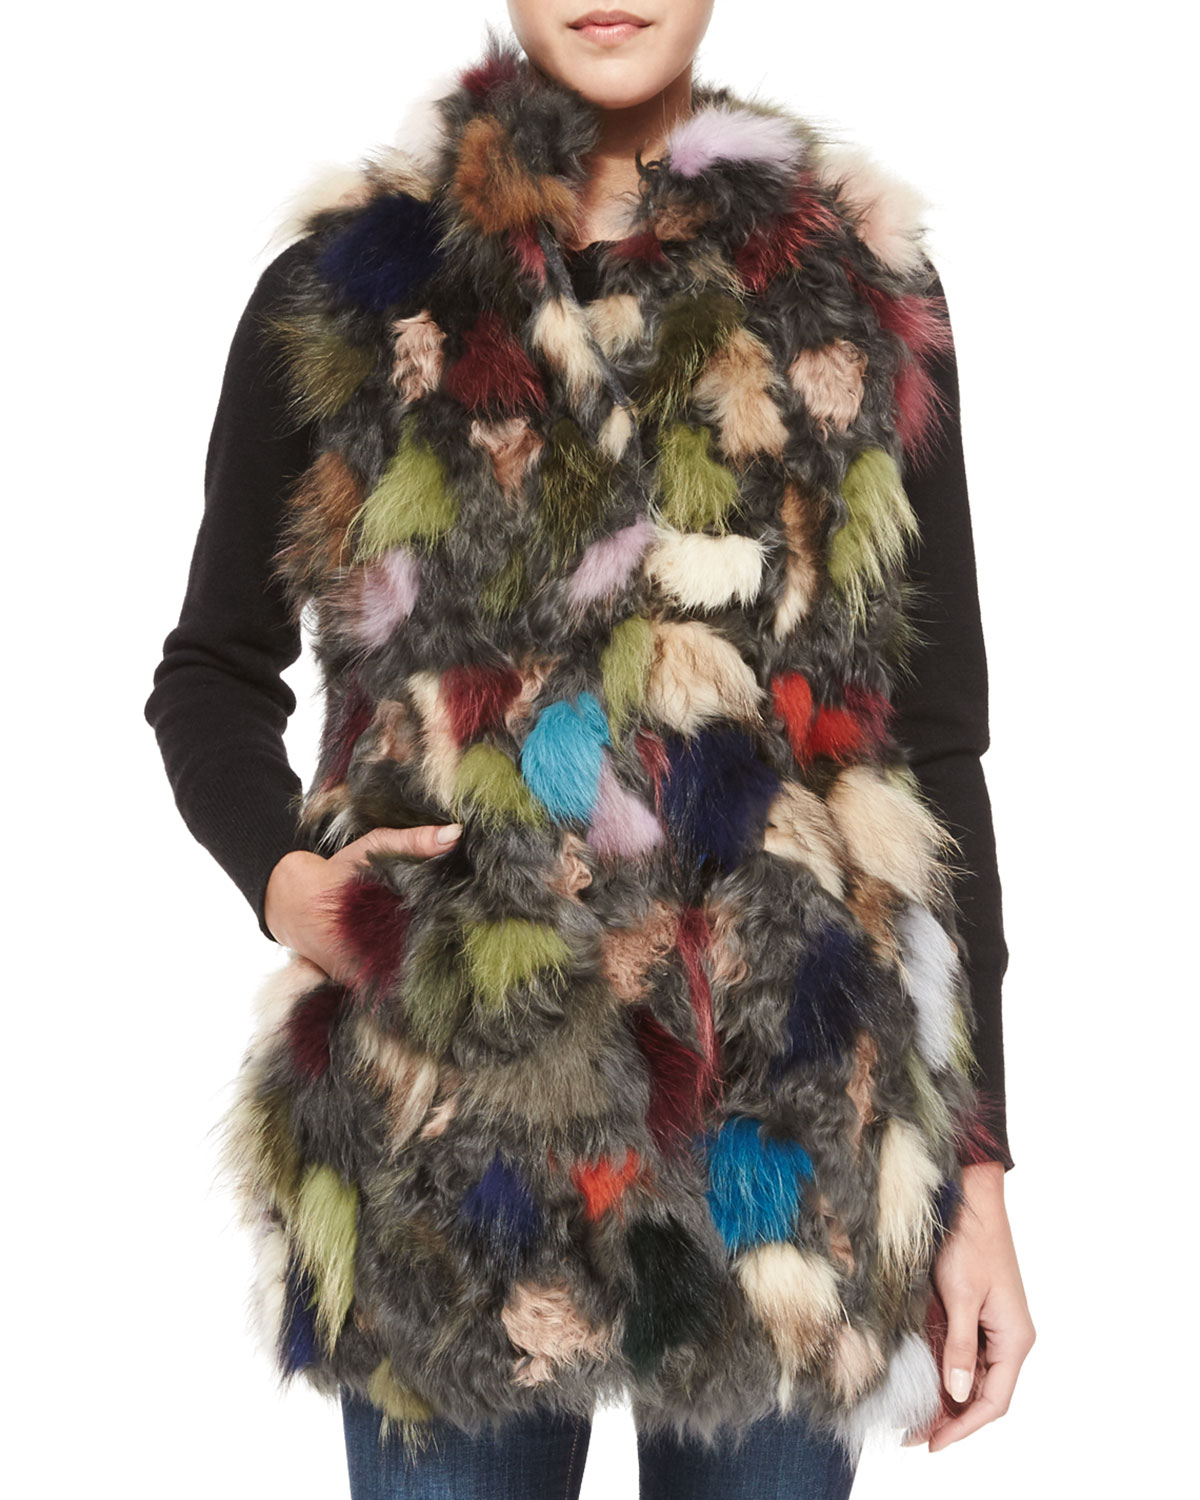 Multicolored Patchwork Lamb & Fox Fur Vest, Size: SMALL, DARK GREY - Goes